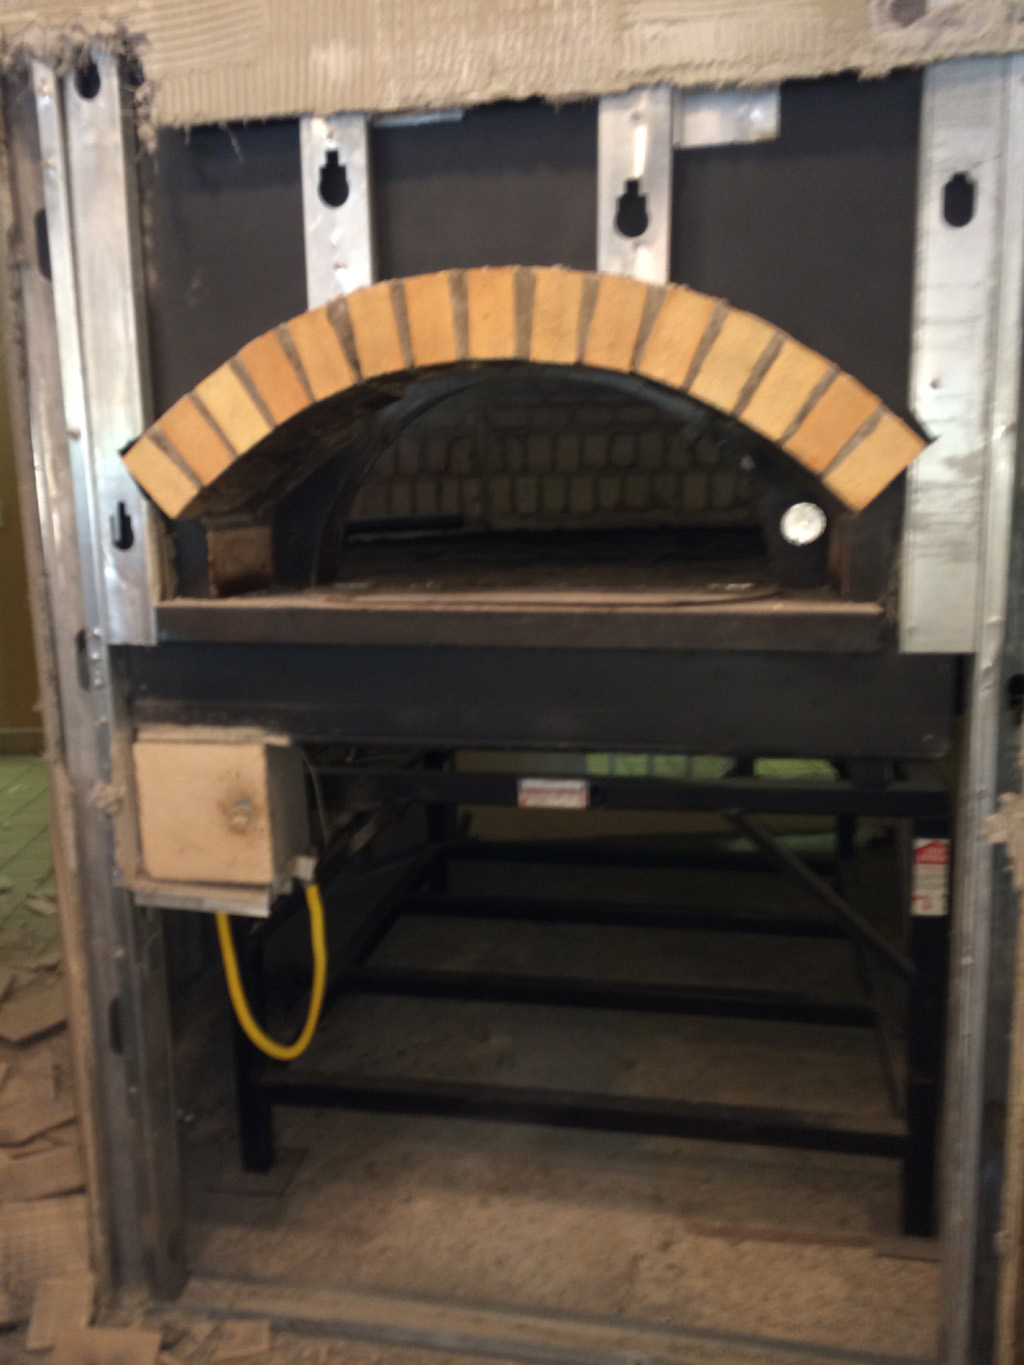 Used Pizza Ovens For Sale >> Used Pizza Oven Bravo Gas Fired Brick Brv 180